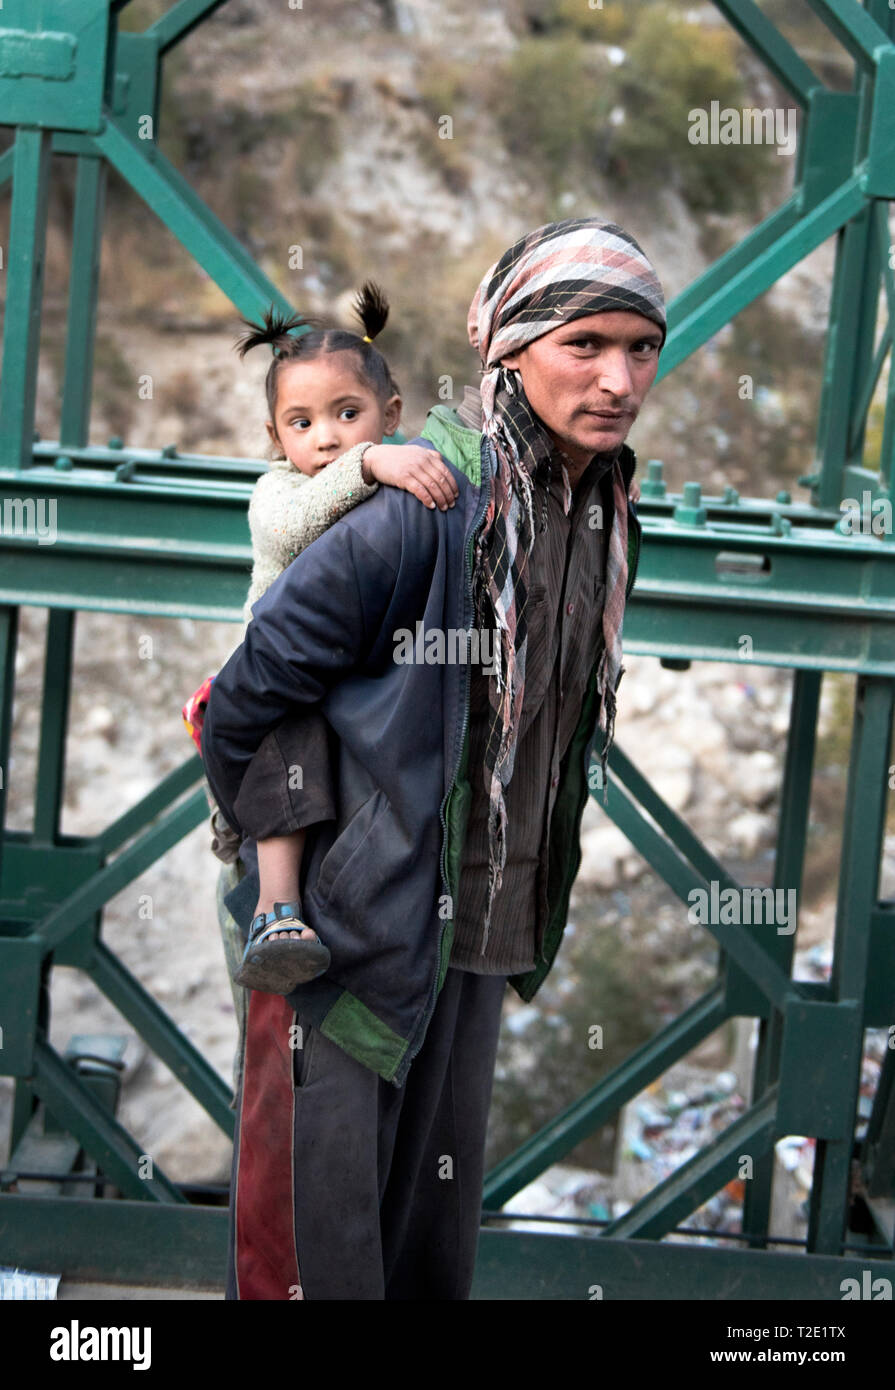 A man with his child in Himachal Pradesh, India - Stock Image